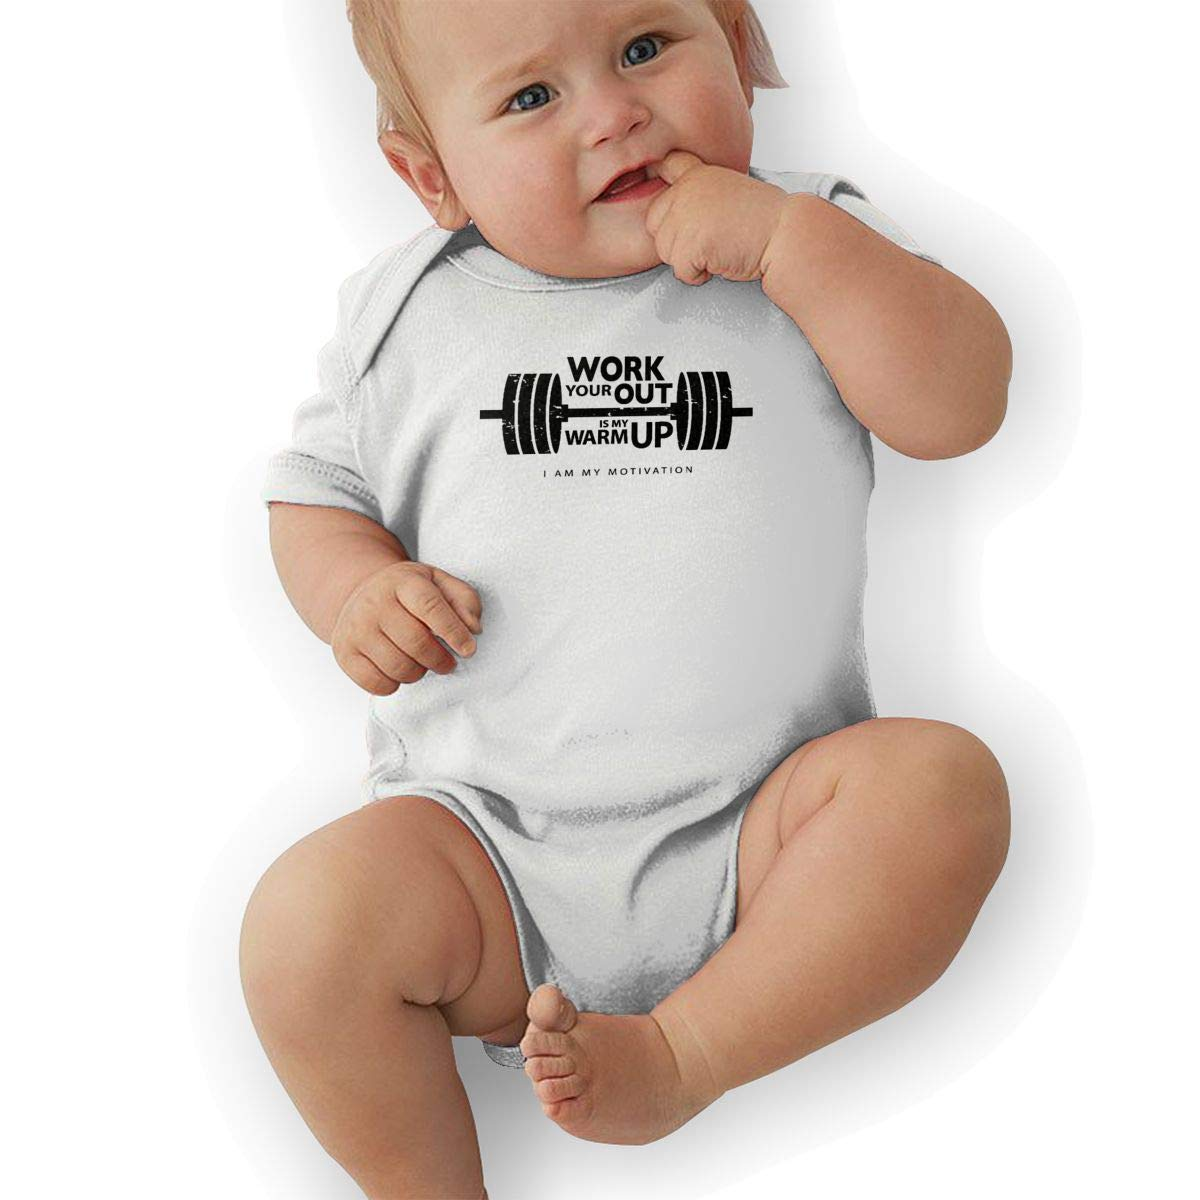 Infant Baby Girls Bodysuit Short-Sleeve Onesie Your Workout is My Warmup Print Outfit Spring Pajamas